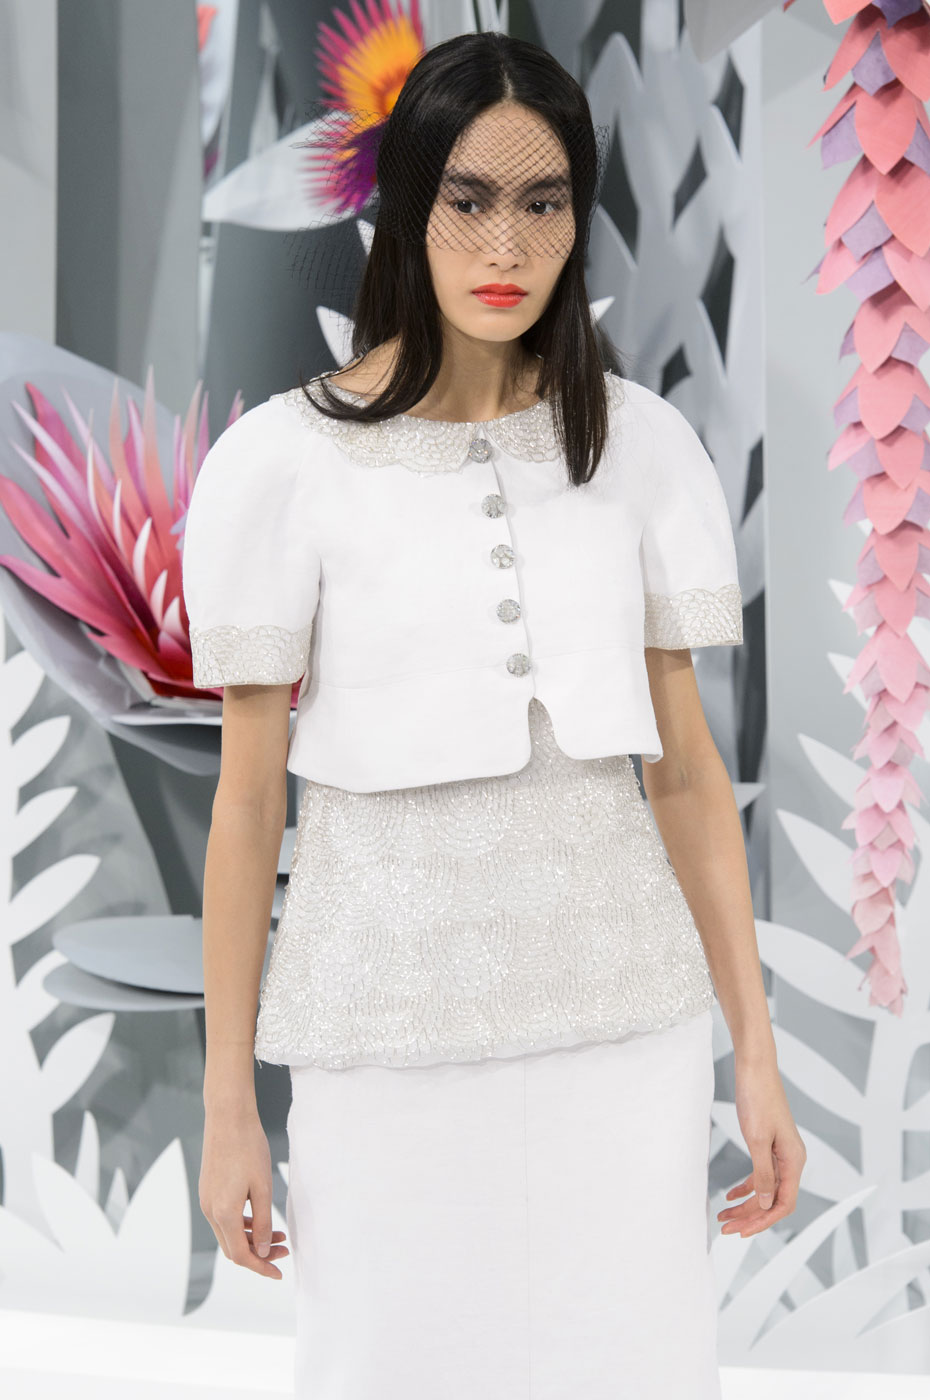 Chanel-fashion-runway-show-haute-couture-paris-spring-summer-2015-the-impression-120